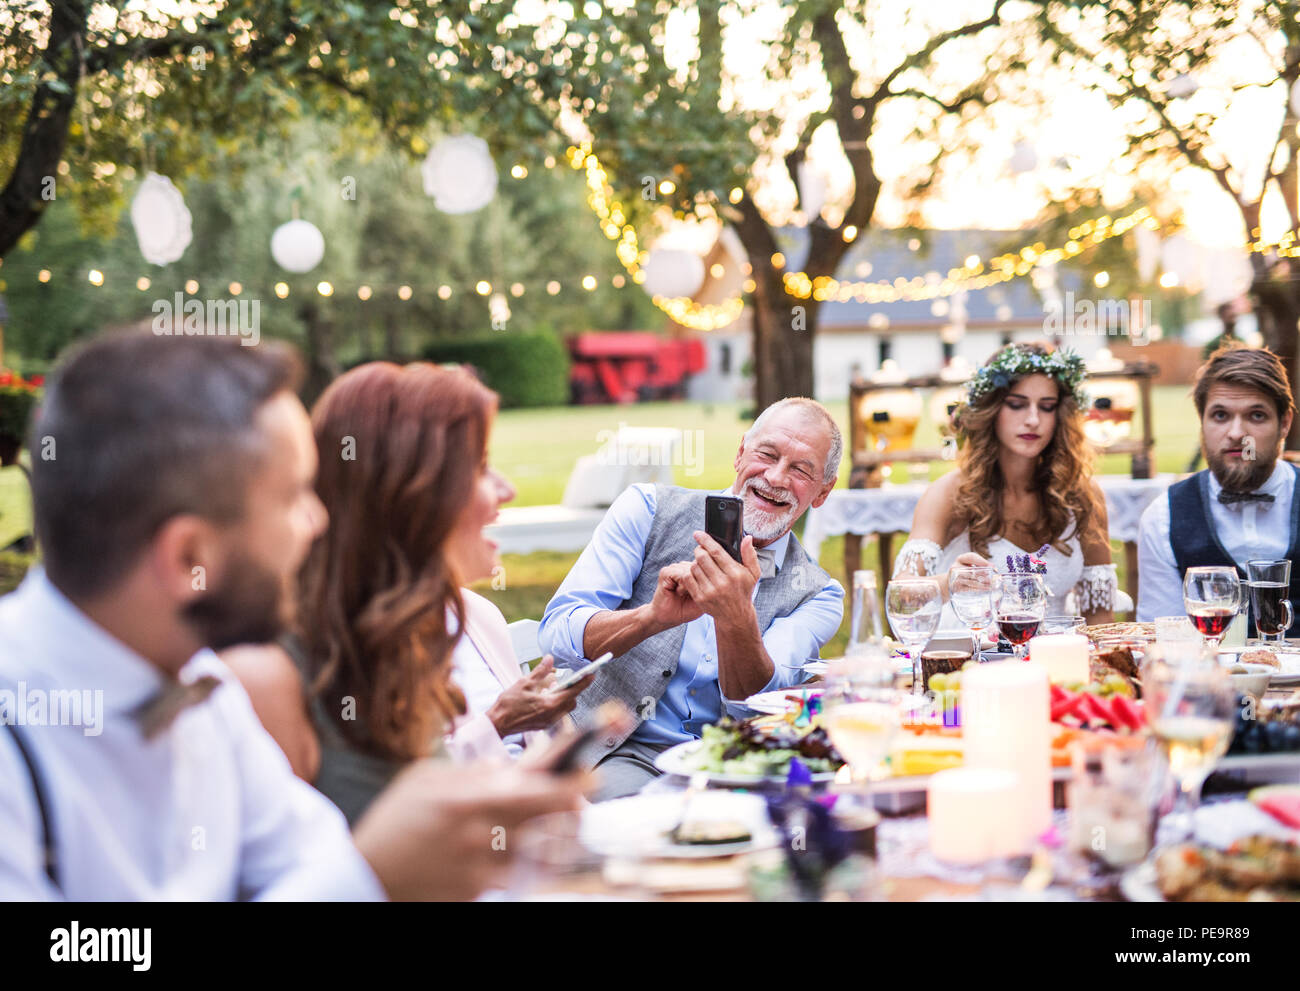 A senior man taking selfie at the wedding reception outside in the backyard. - Stock Image